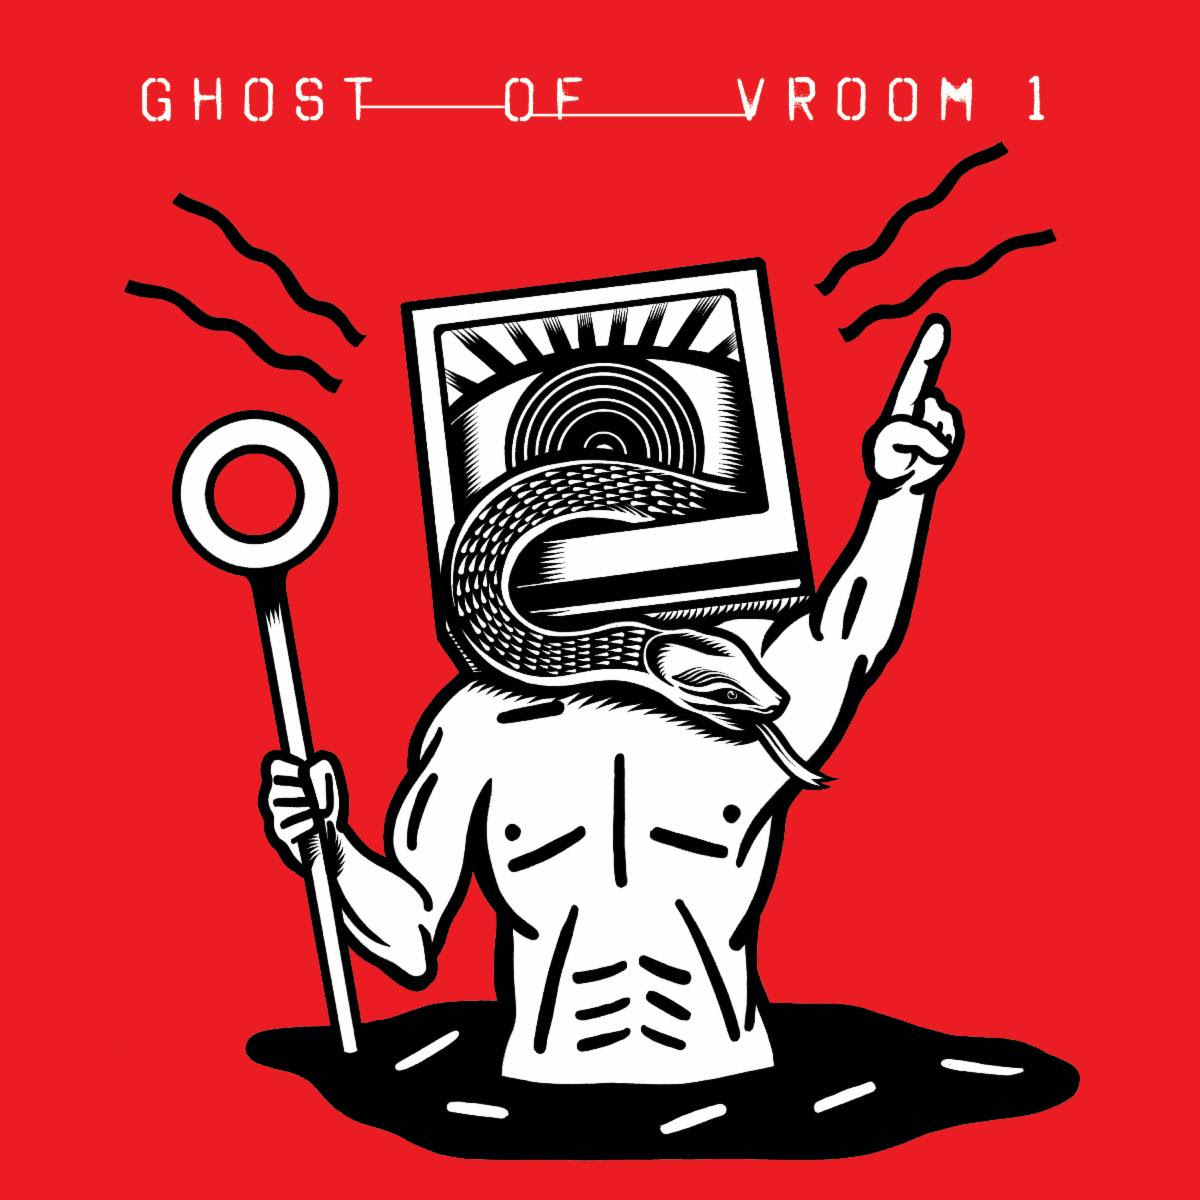 GHOST OF VROOM GHOST OF VROOM 1 (Release Date: March 19, 2021)